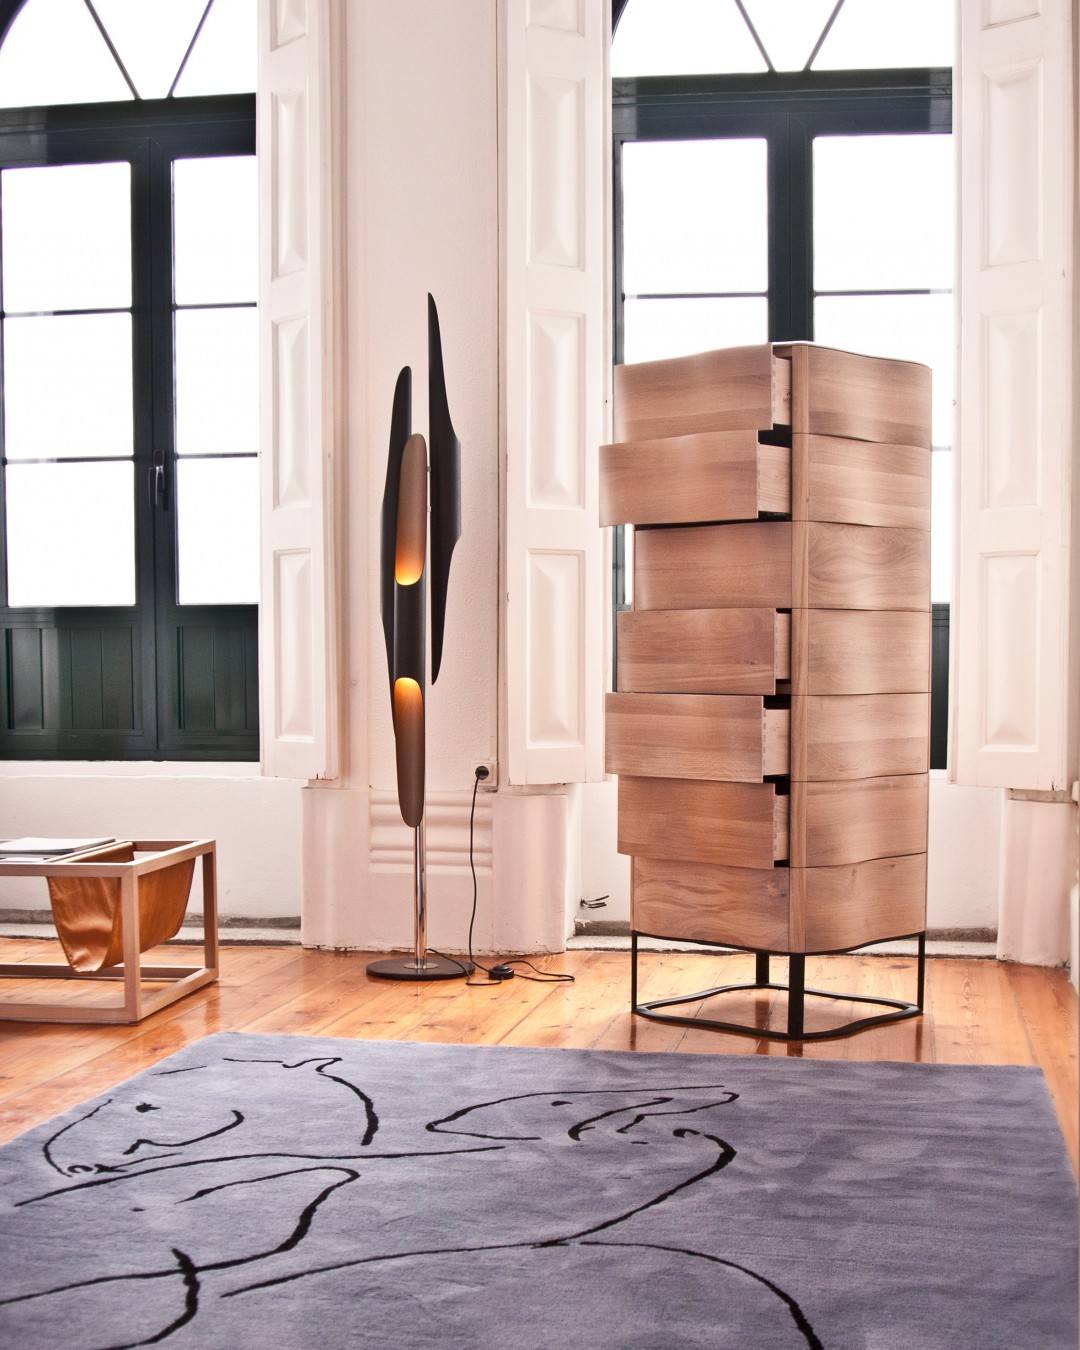 The Best Minimalist Floor Lamps For Your Scandinavian Home minimalist floor lamps The Best Minimalist Floor Lamps For Your Scandinavian Home The Best Minimalist Floor Lamps For Your Scandinavian Home 8